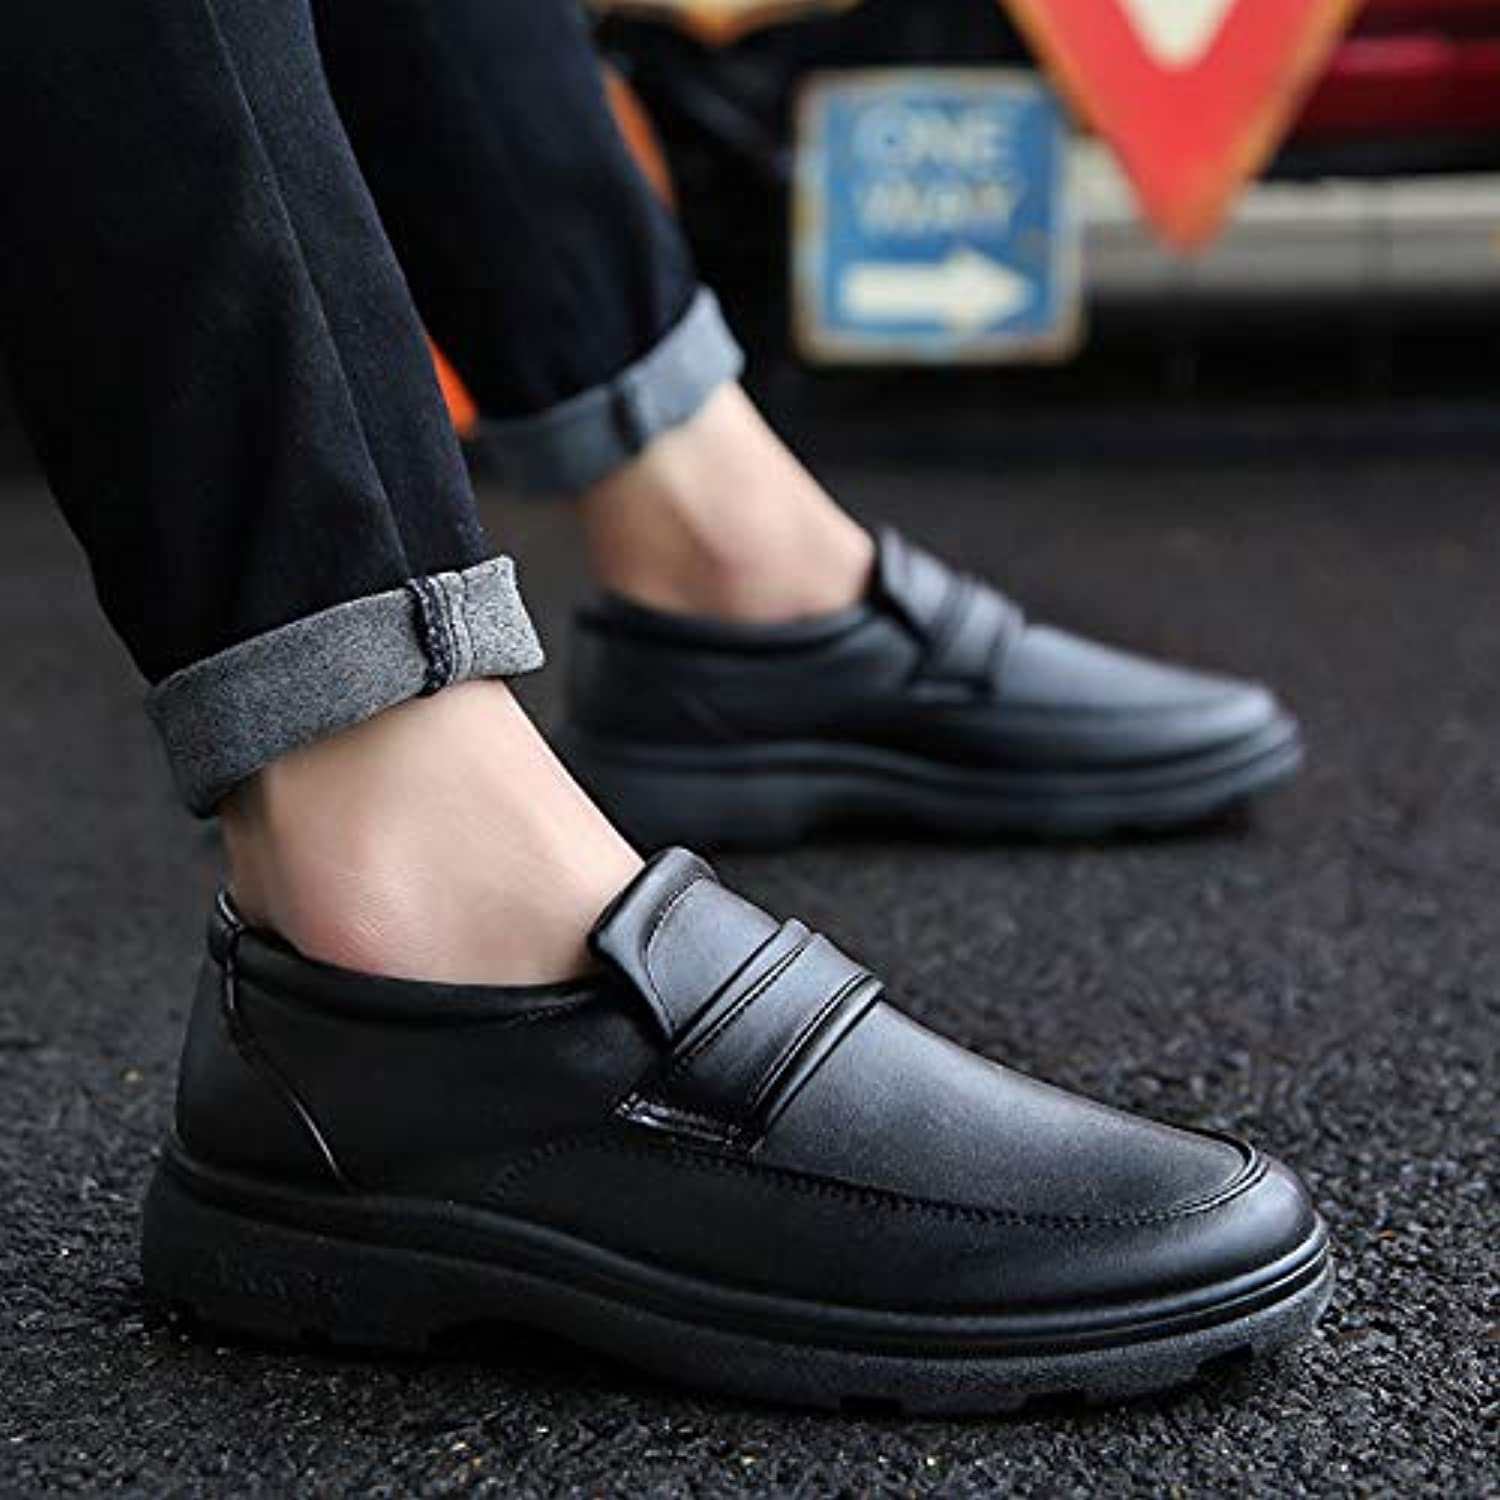 LOVDRAM Men'S Leather shoes Autumn And Winter Casual shoes Outsole Foot Low Heel shoes Retro Simple Lace Gentleman shoes